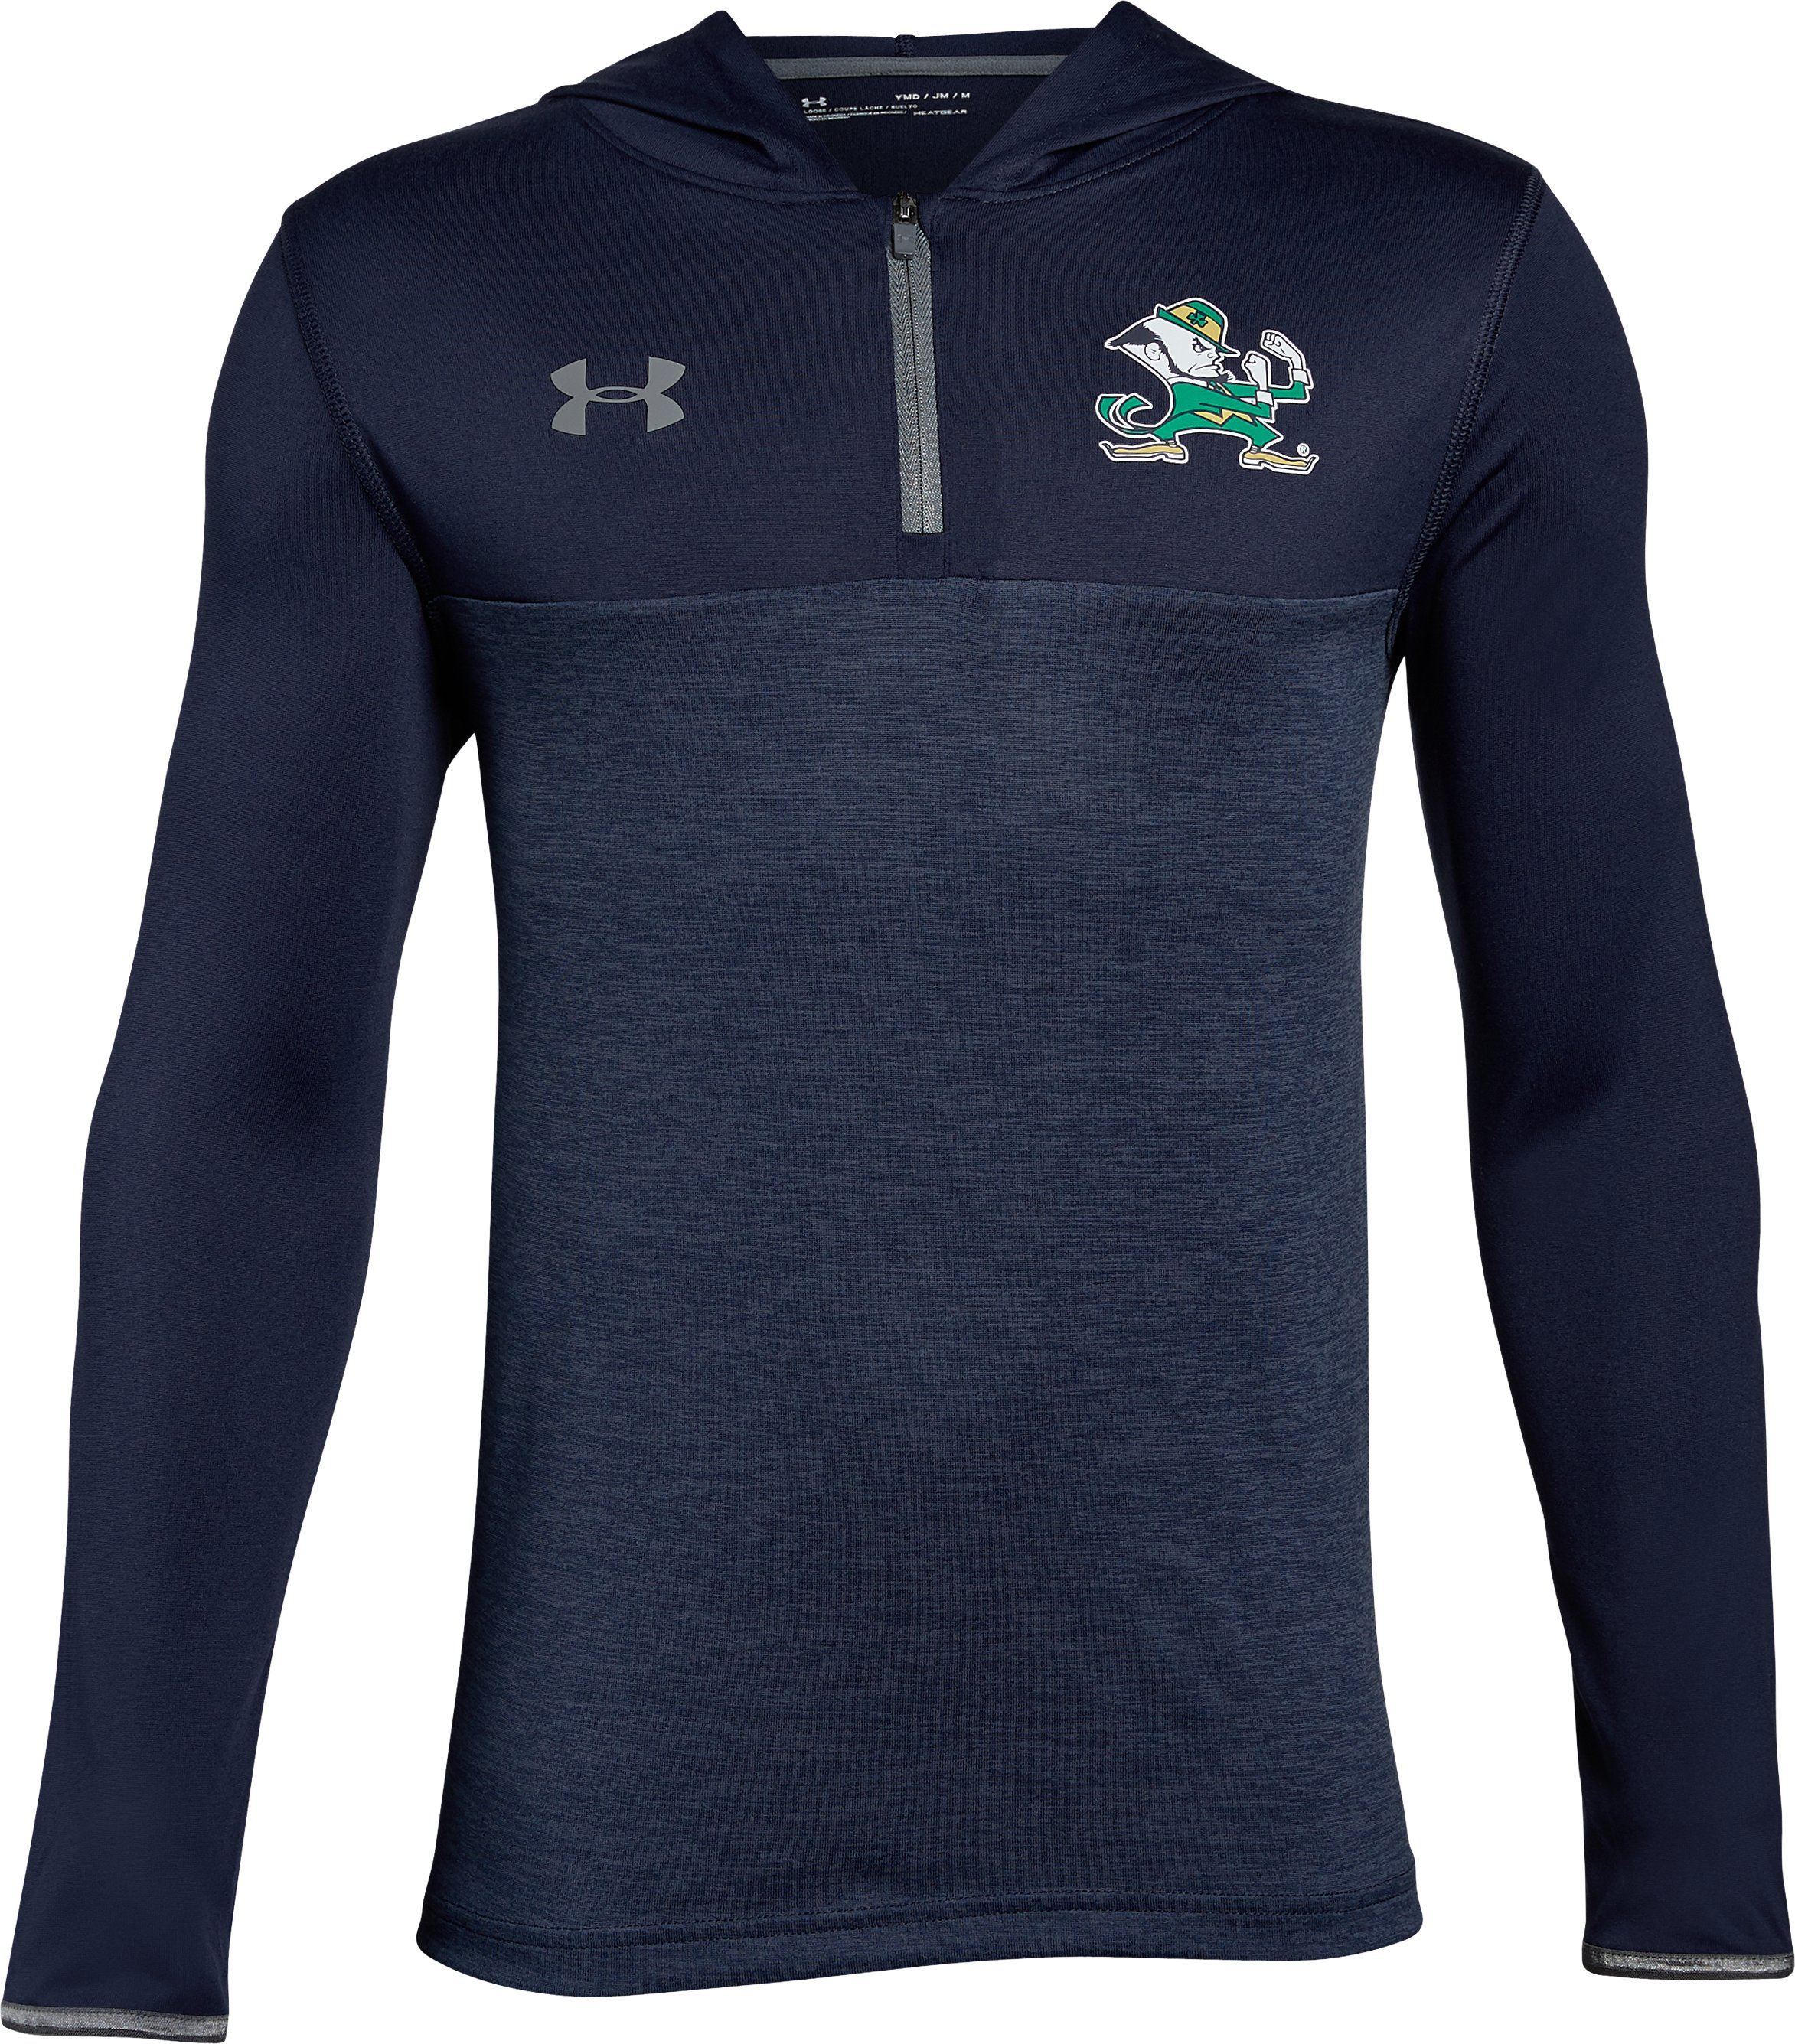 Boys' Notre Dame Tech ¼ Zip Hoodie, Midnight Navy,